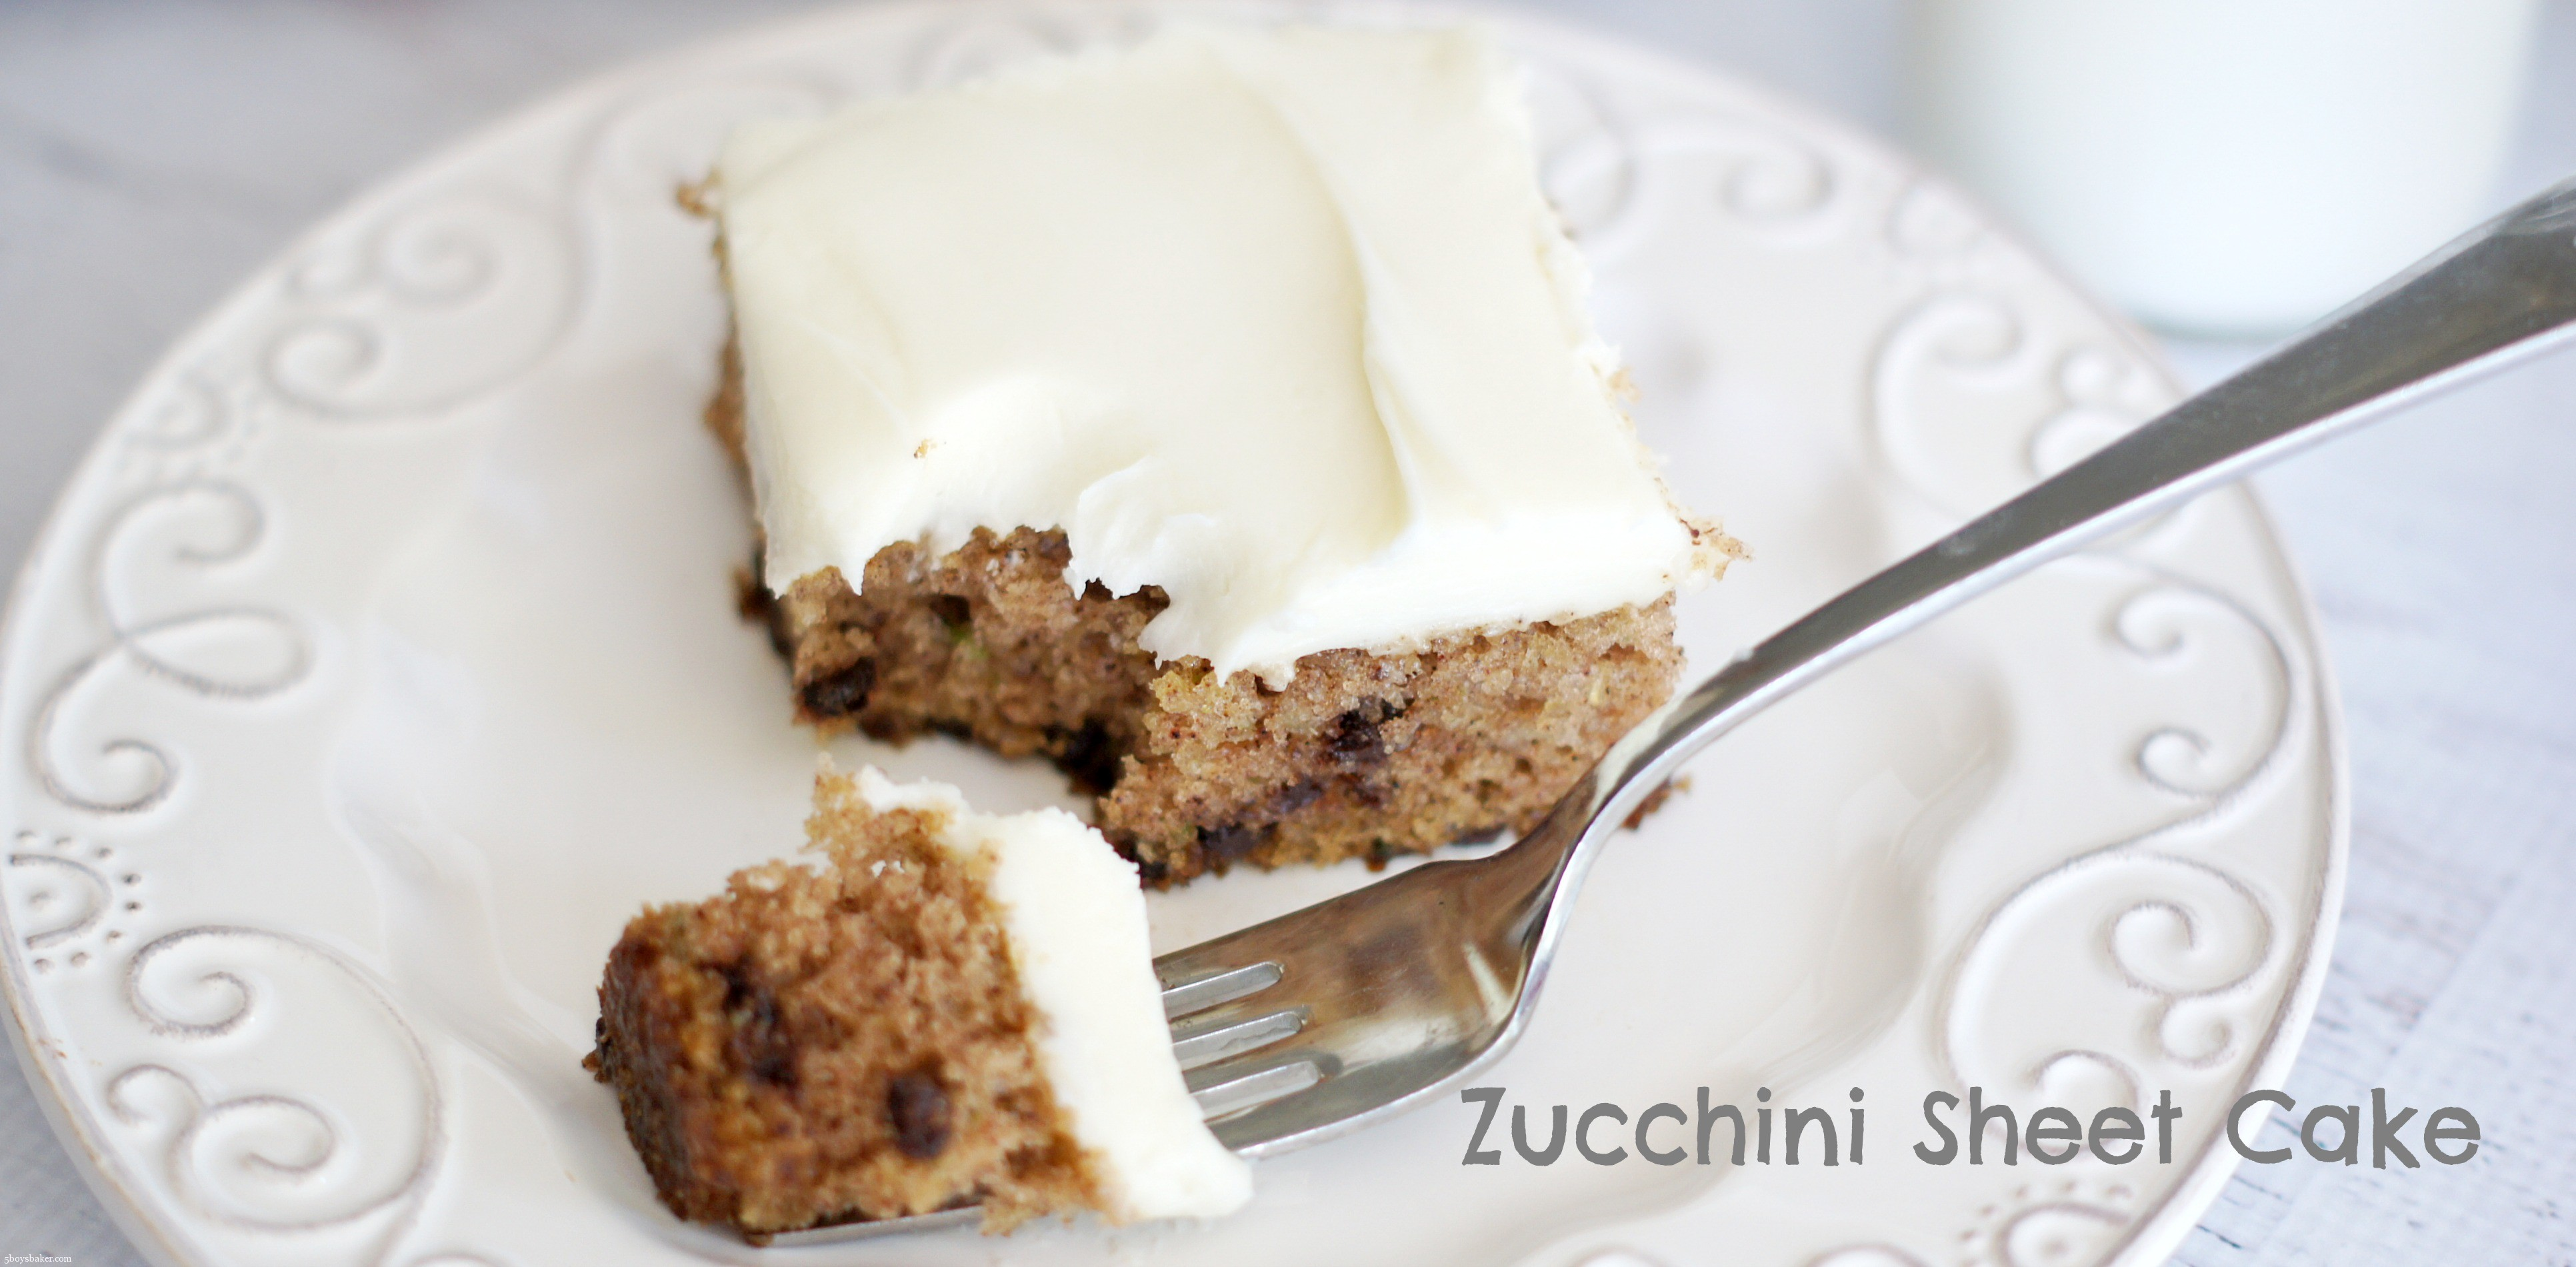 piece of zucchini sheet cake with cream cheese frosting on a white plate with a bite on a fork